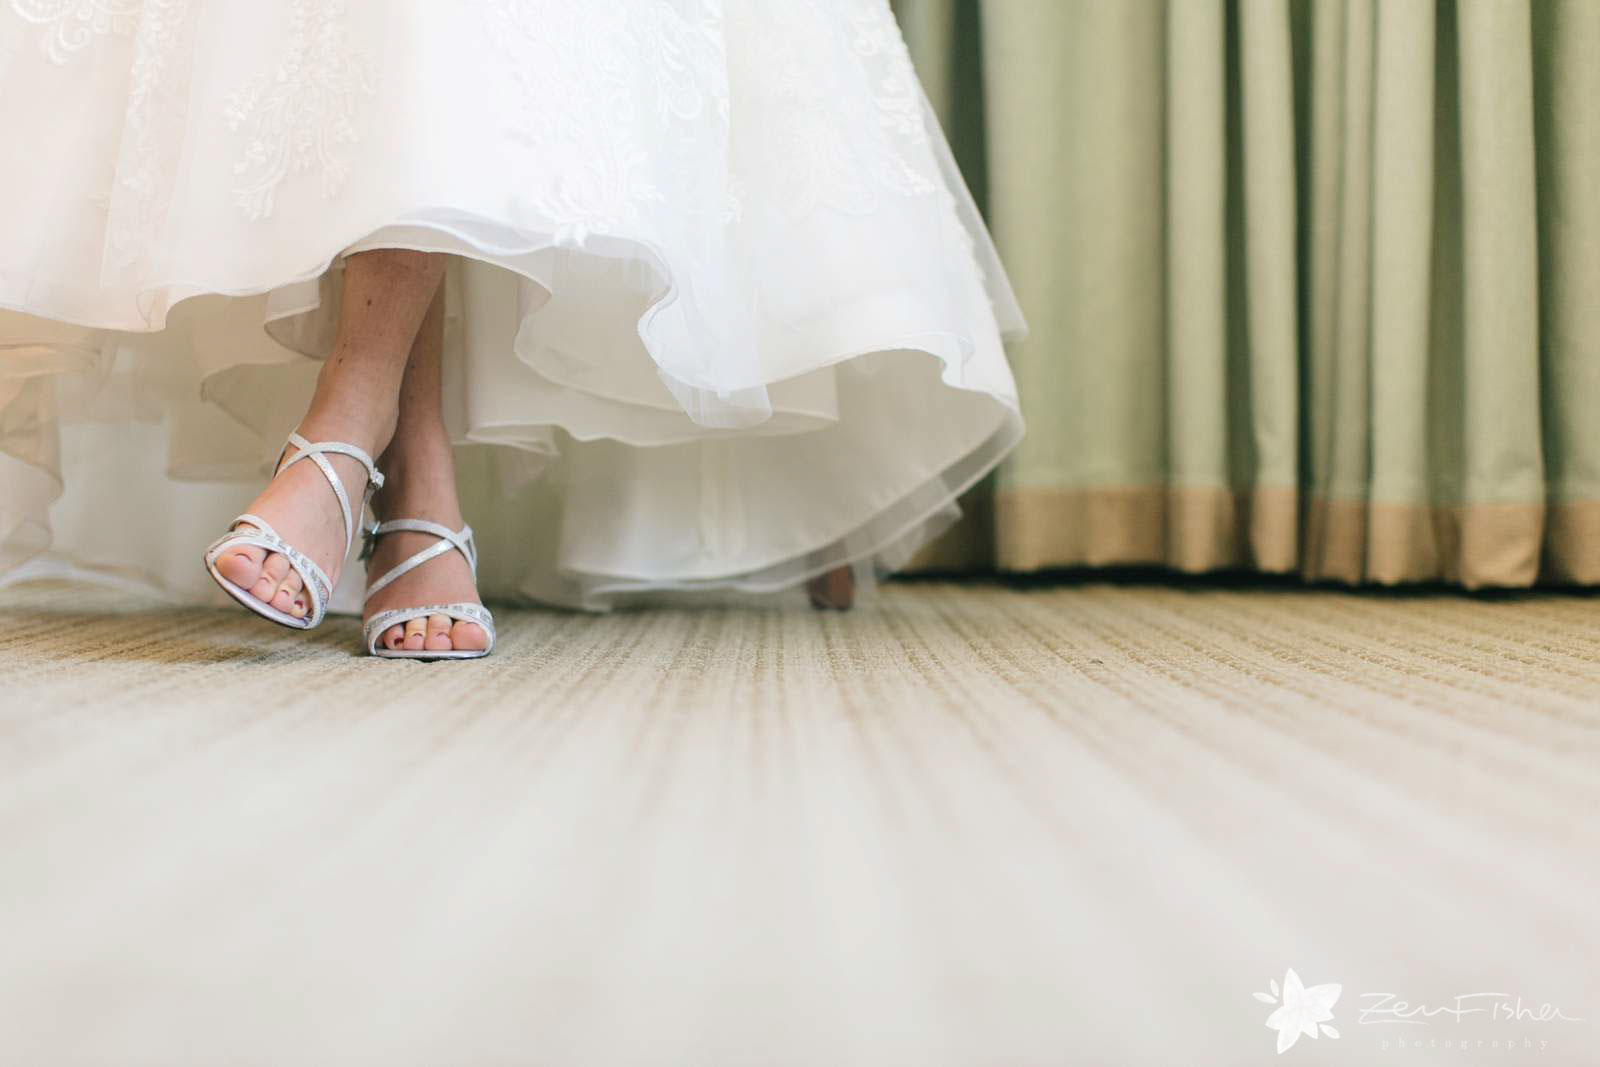 Bride's dress lifts up while she is sitting so you can see her shoes, playful moment.